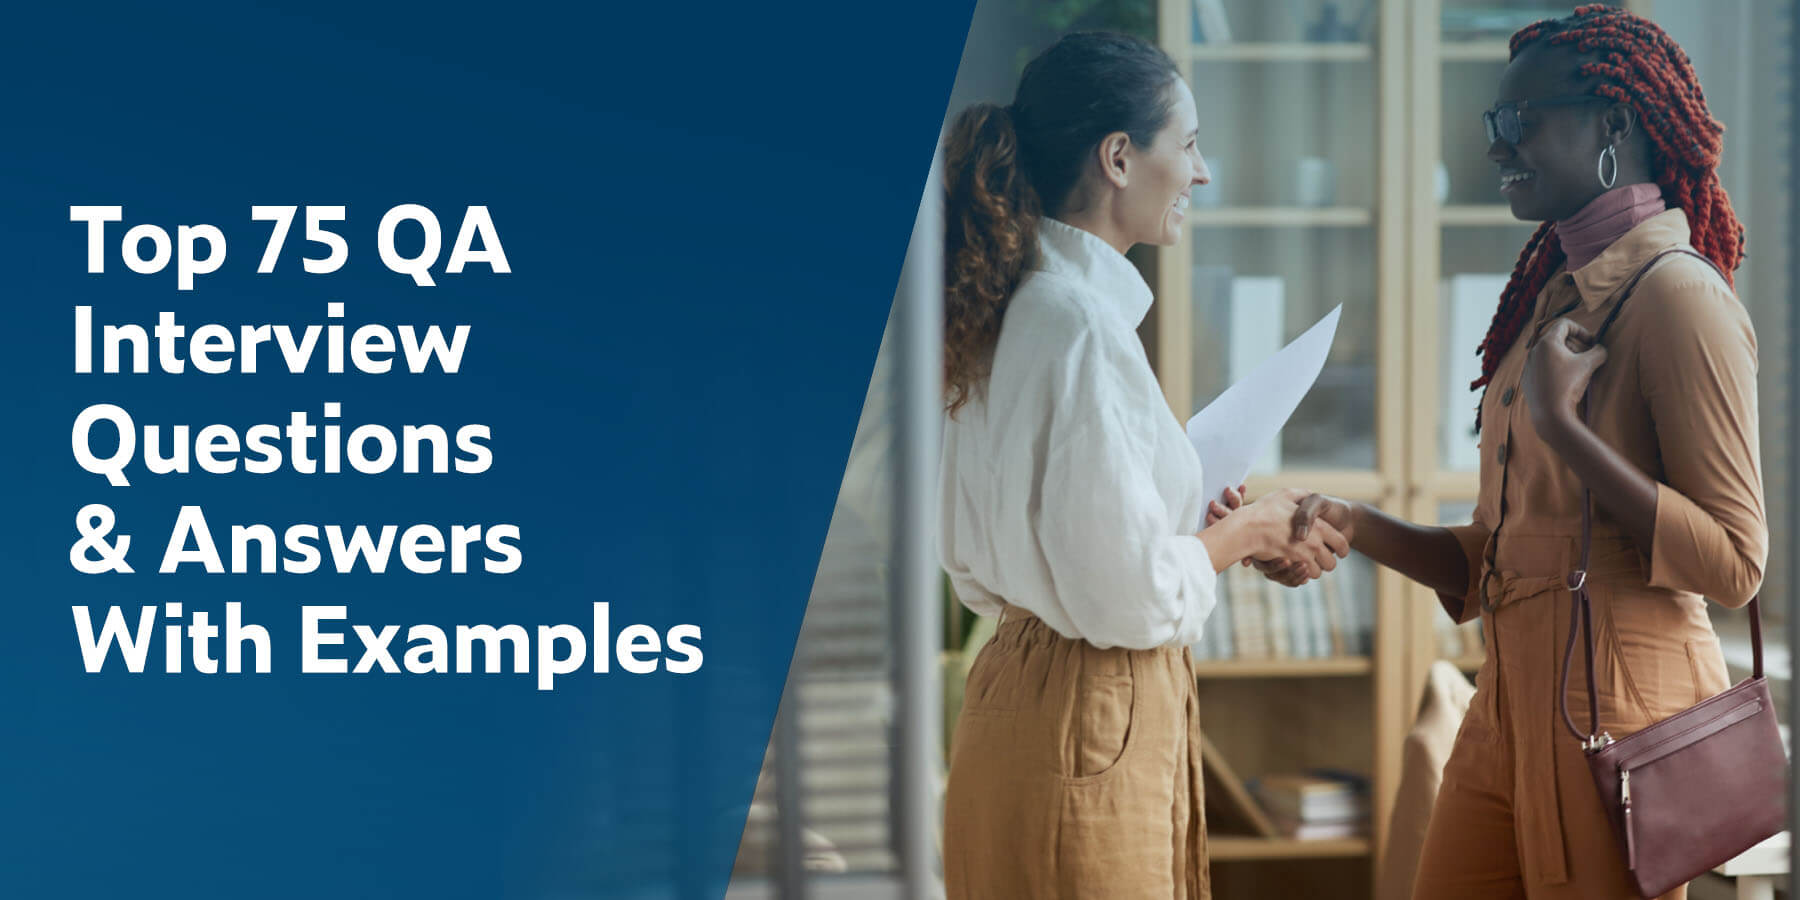 Top 75 QA Interview Questions & Answers With Examples